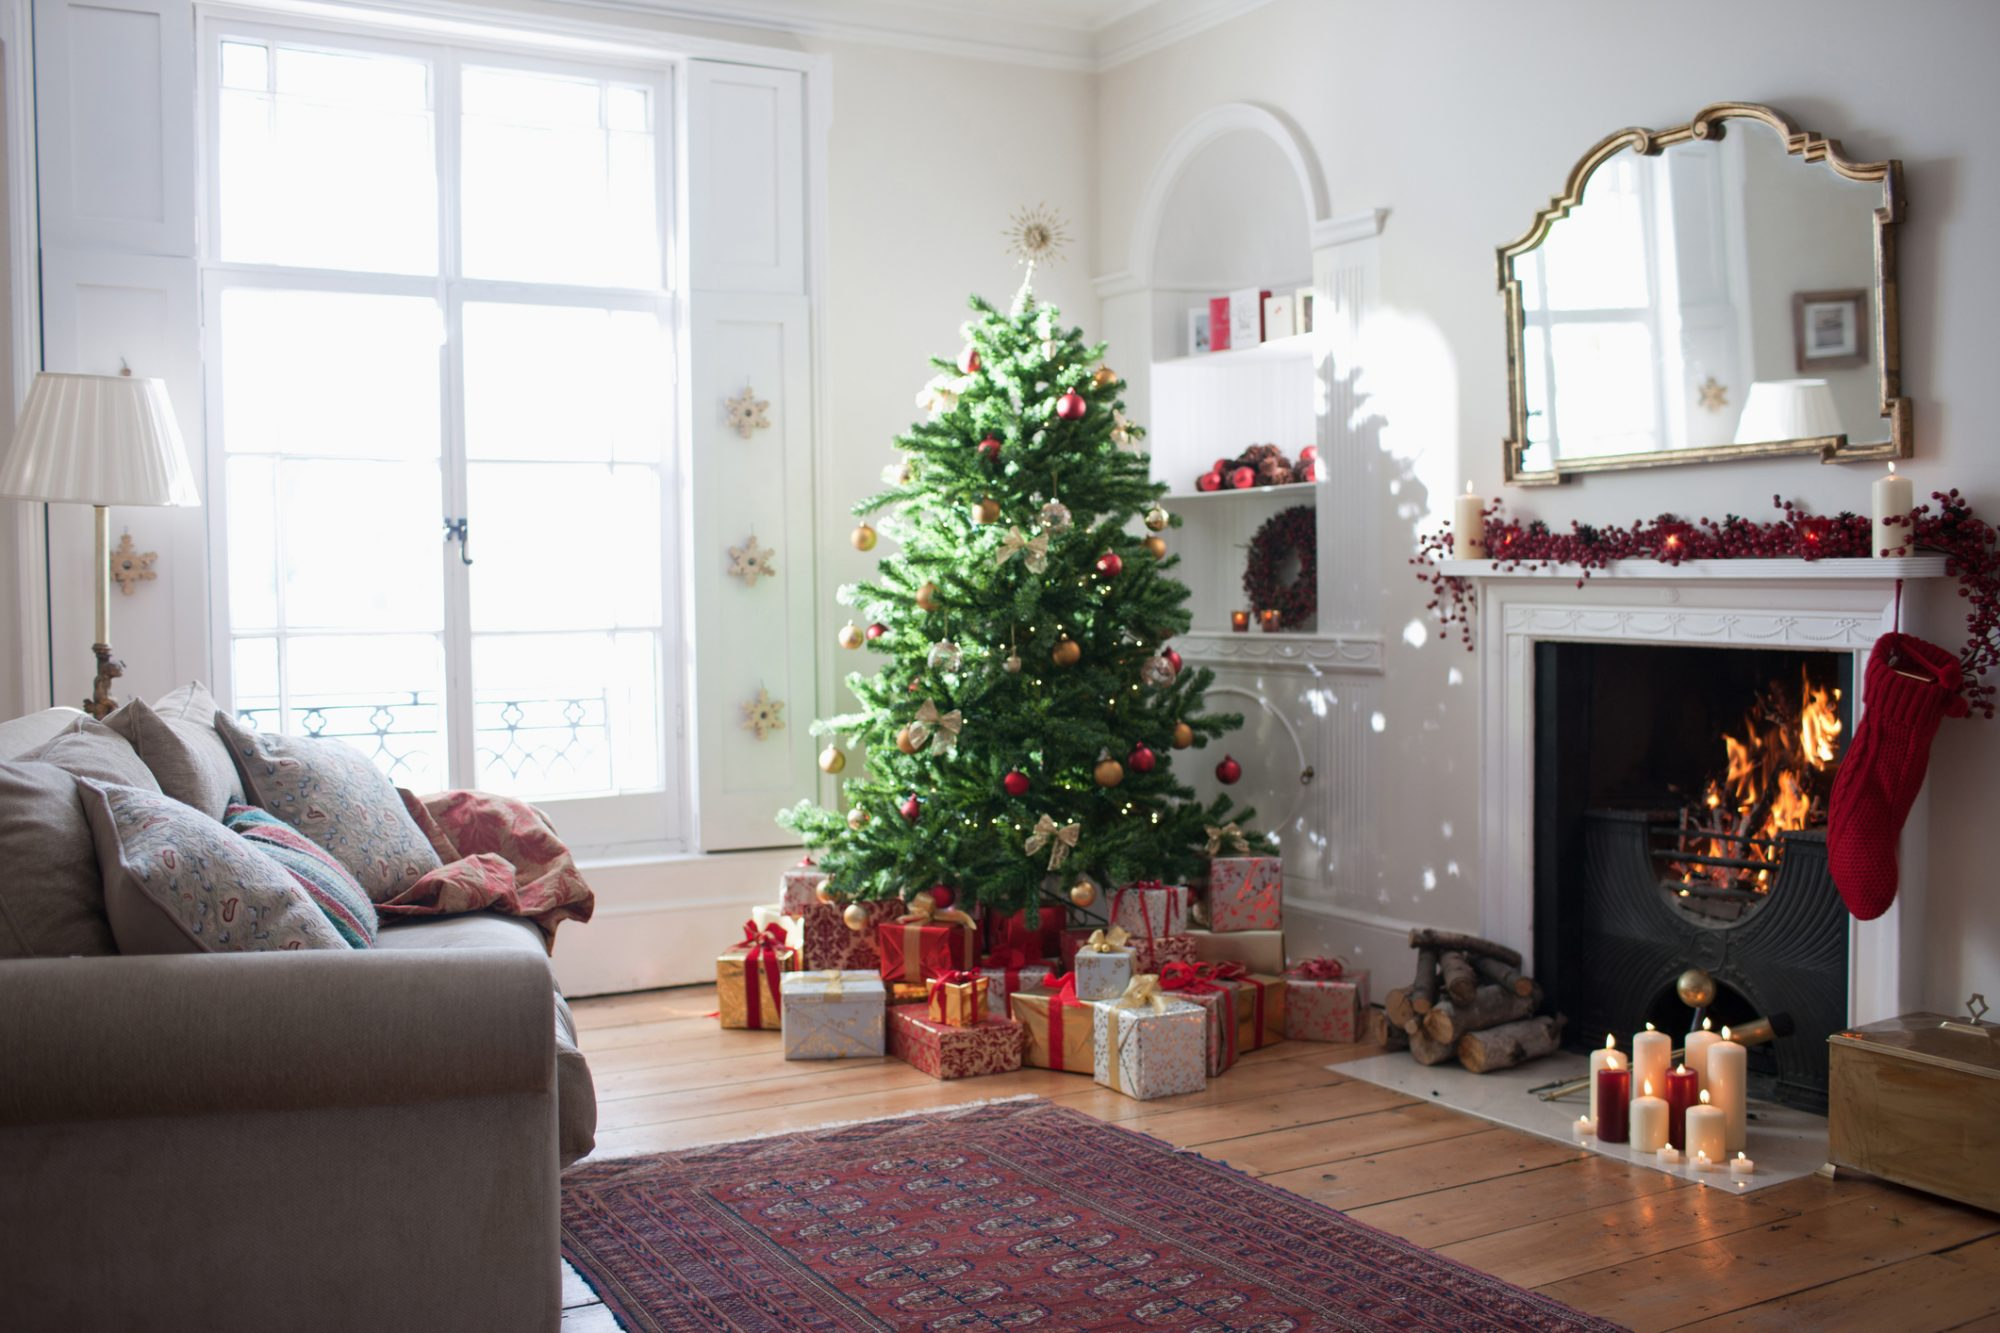 How to Make a Christmas Tree Last Longer, tree in living room